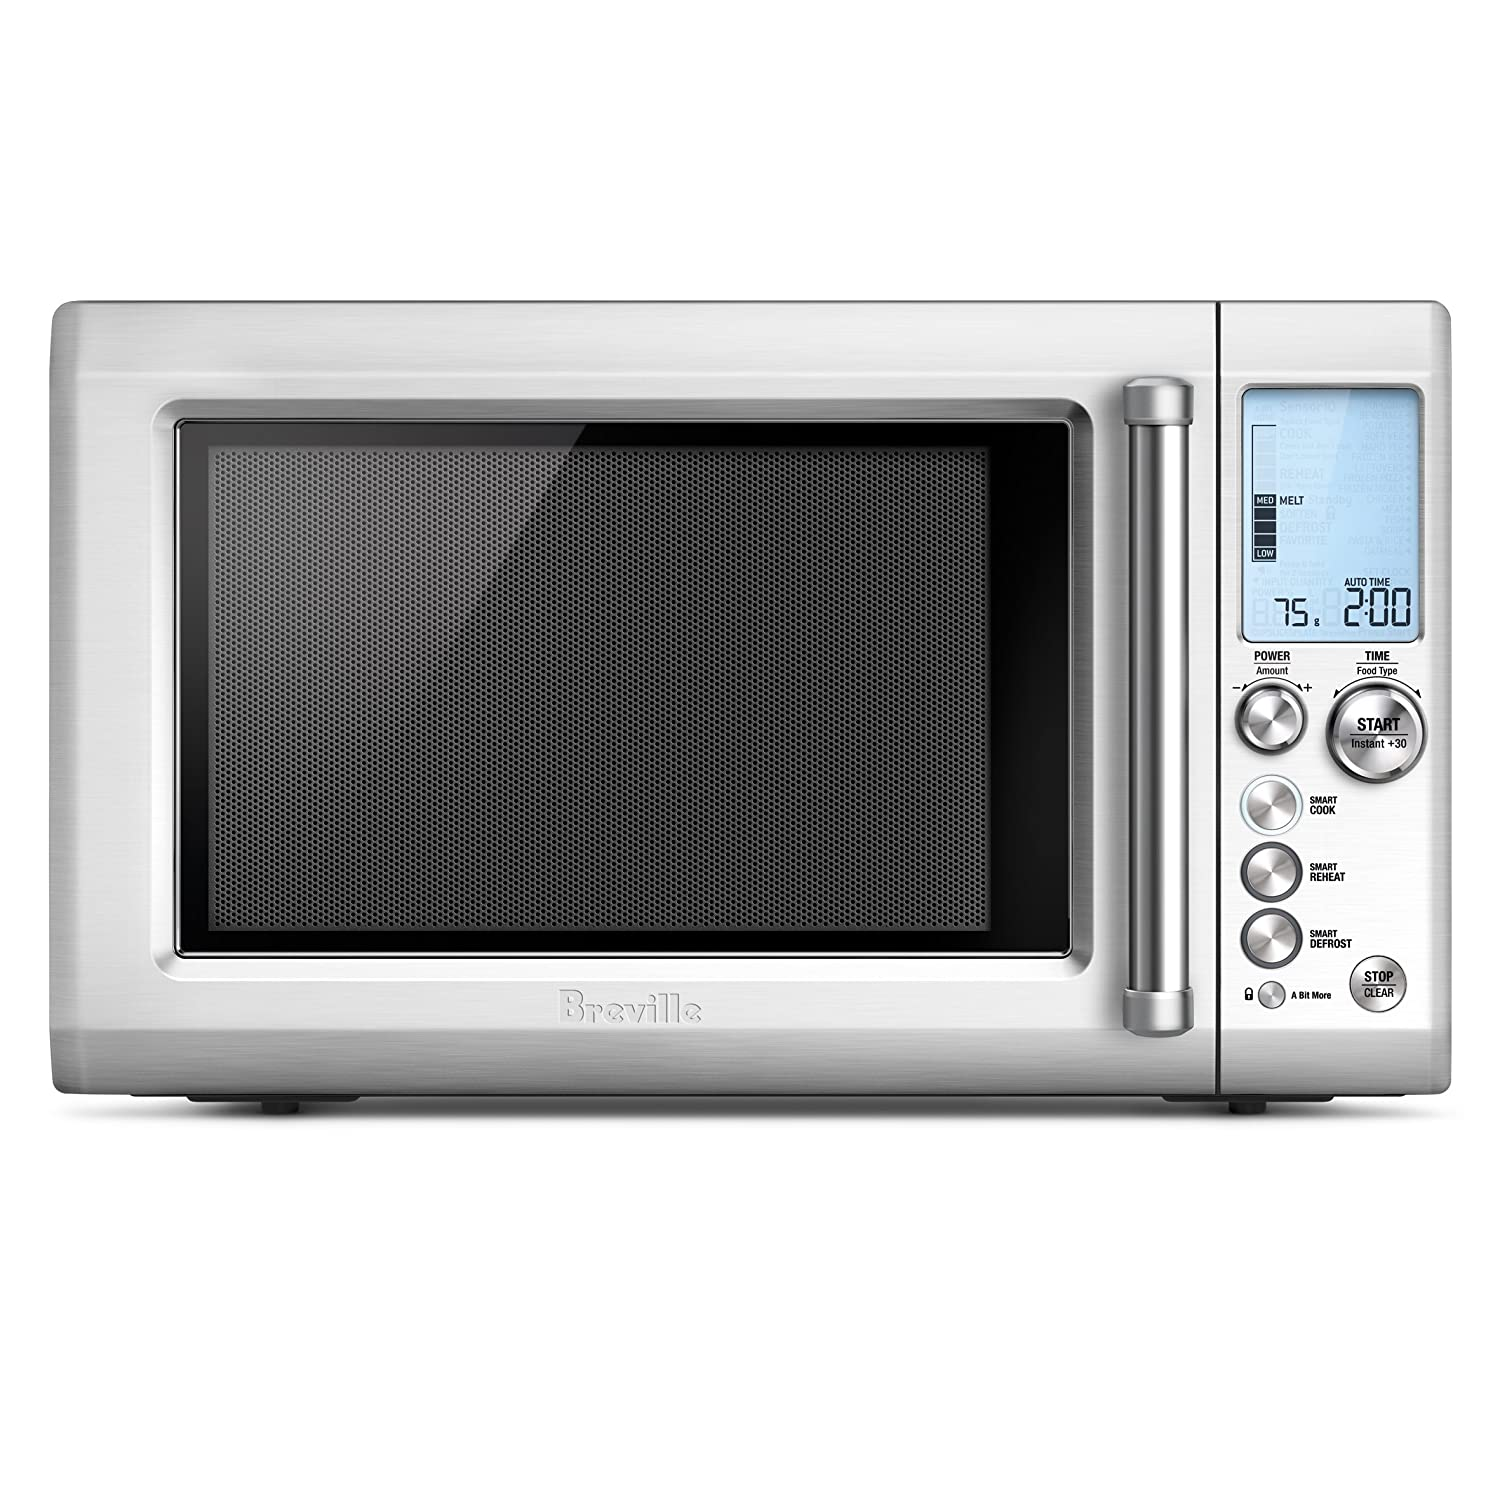 Top 10 Best Microwave Ovens (2020 Reviews & Buying Guide) 10